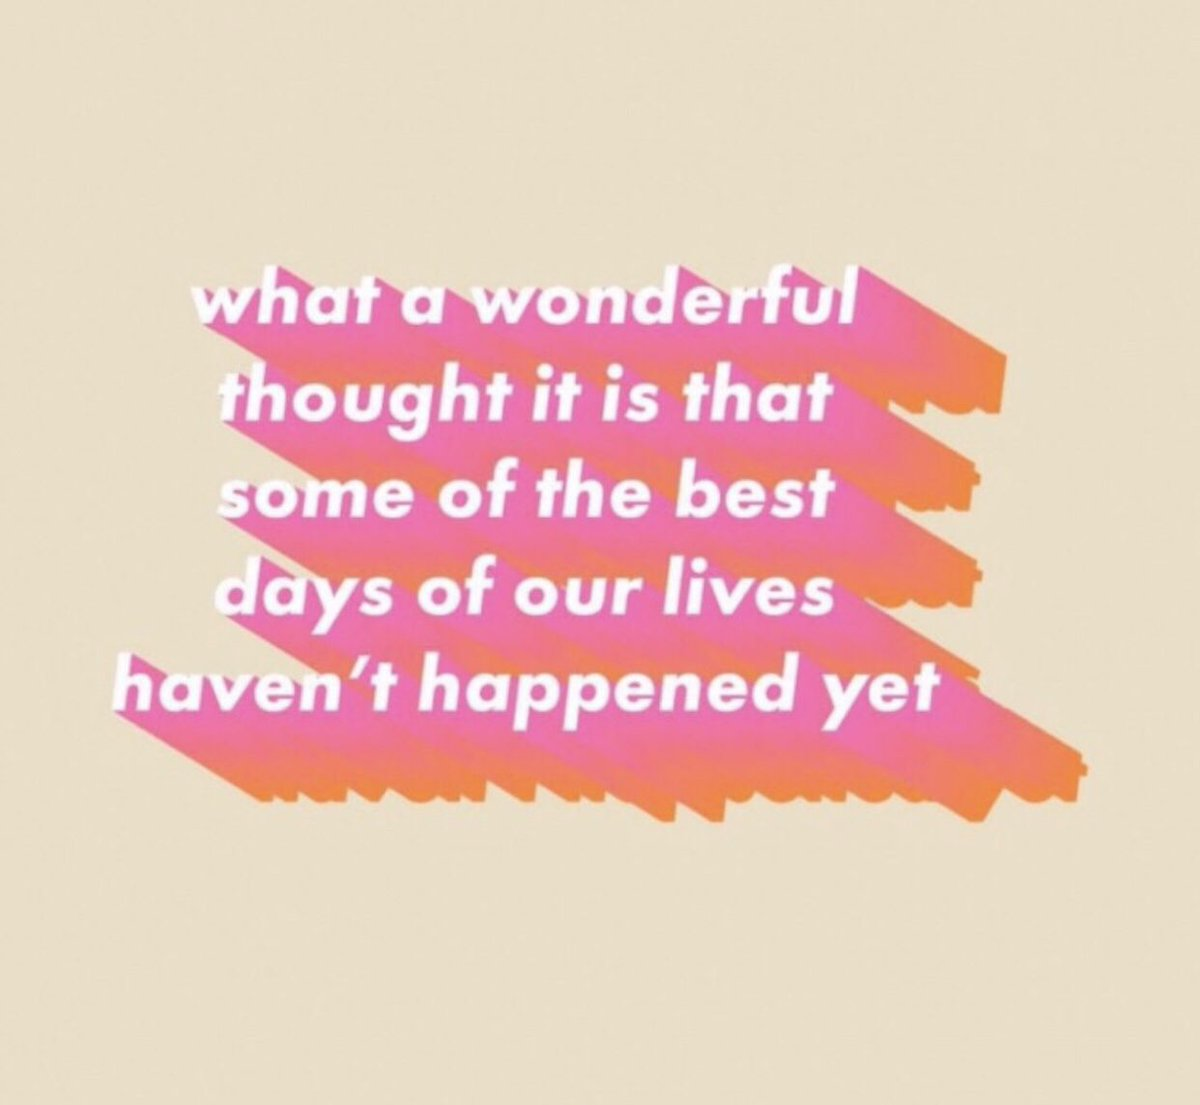 Thursday thoughts 💫 • • • • • #quote #quoteoftheday #quotesofinstagram #fashion #thursdayfeeling #fblogger #summer #daydreaming #beachwear #vacationplanning #positivevibes #positivethoughts #bestdays